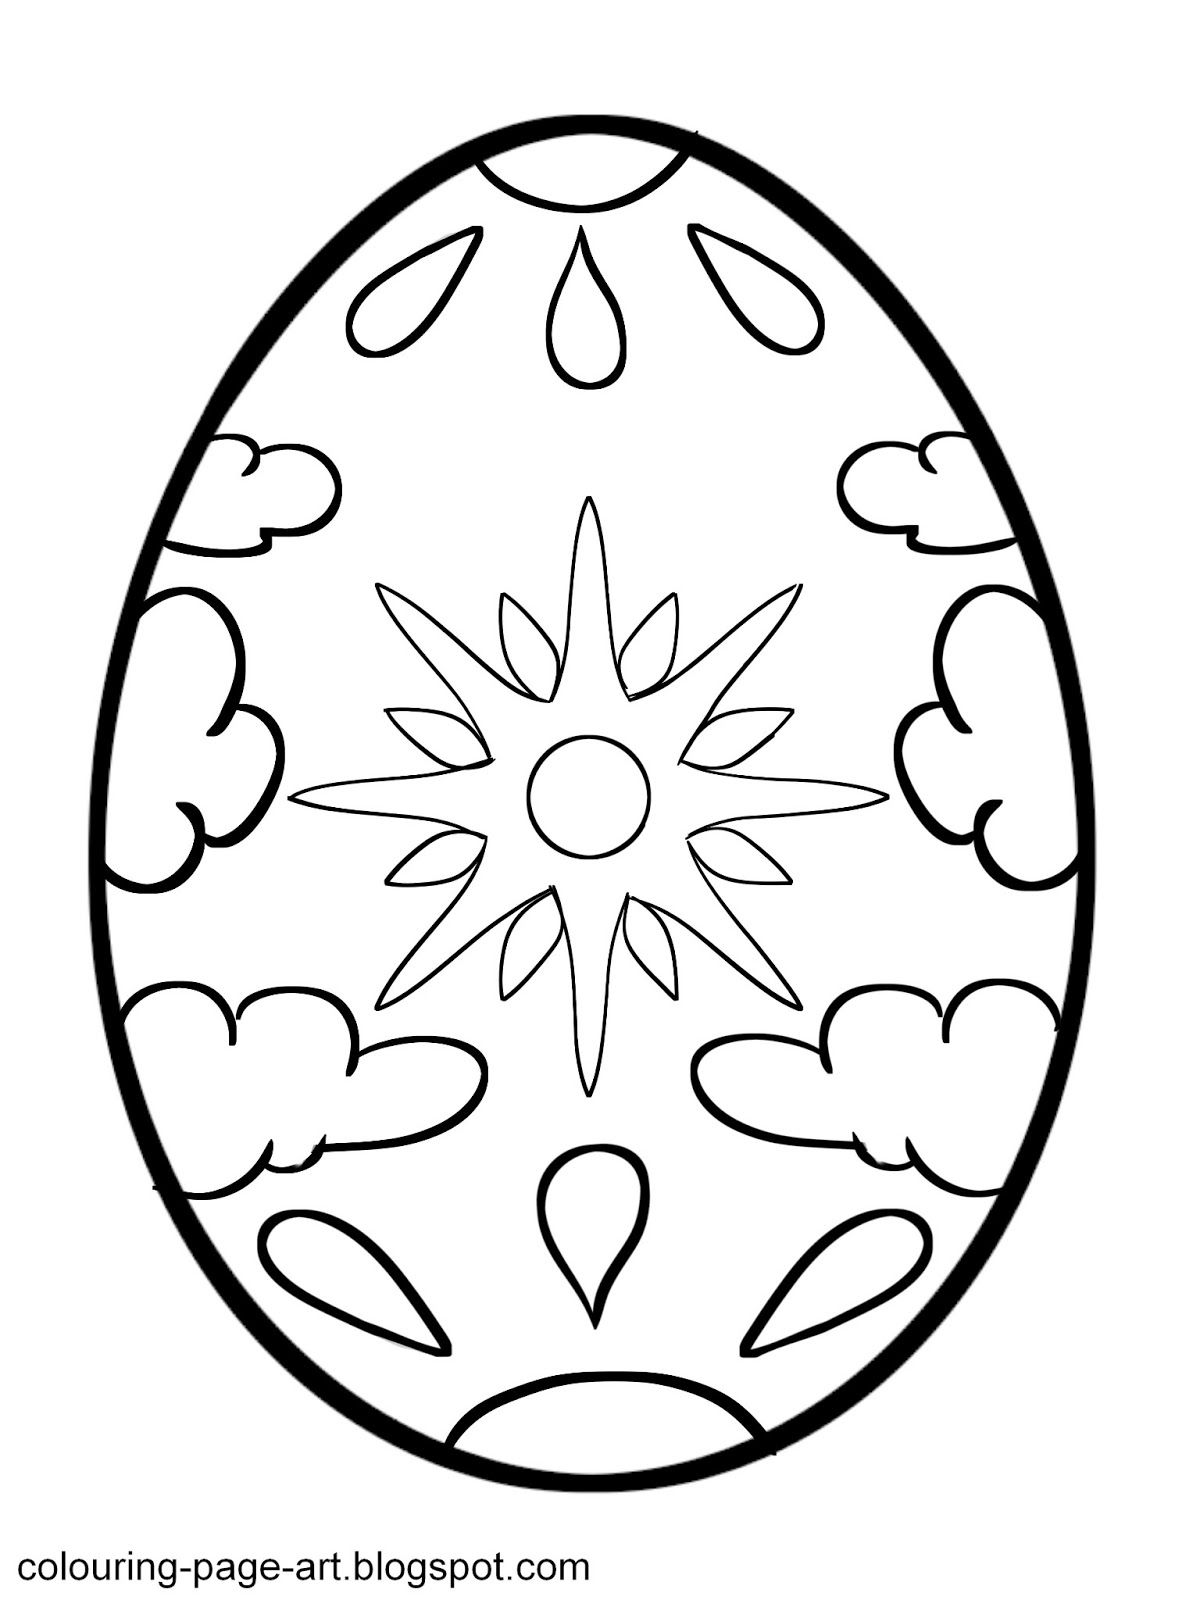 1200x1600 Easter Egg Printable Colouring Pages Easter Egg Designs Easter